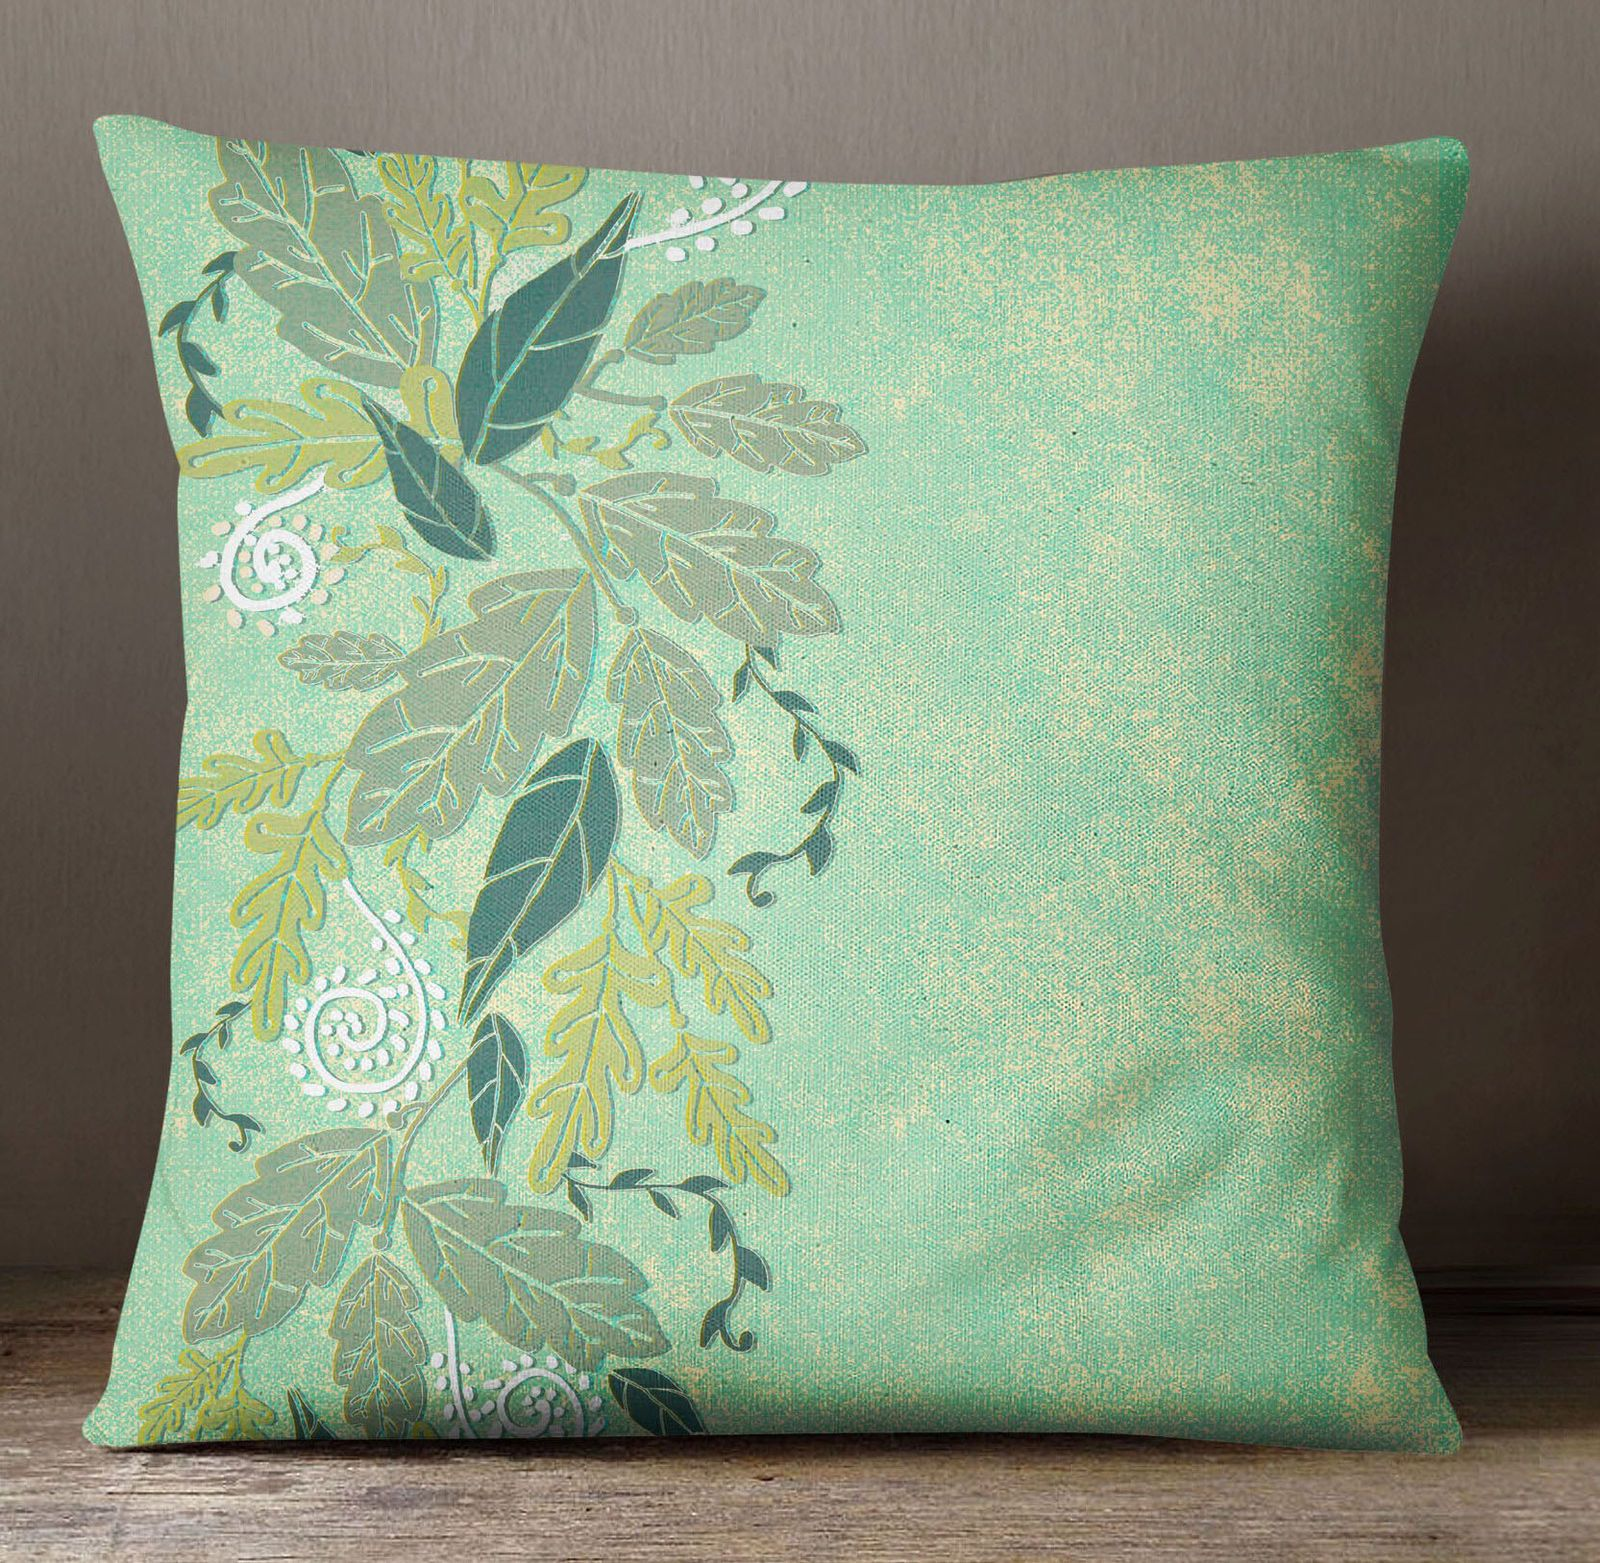 Ssassy square cushion cover home decor mint leaf print pillow case